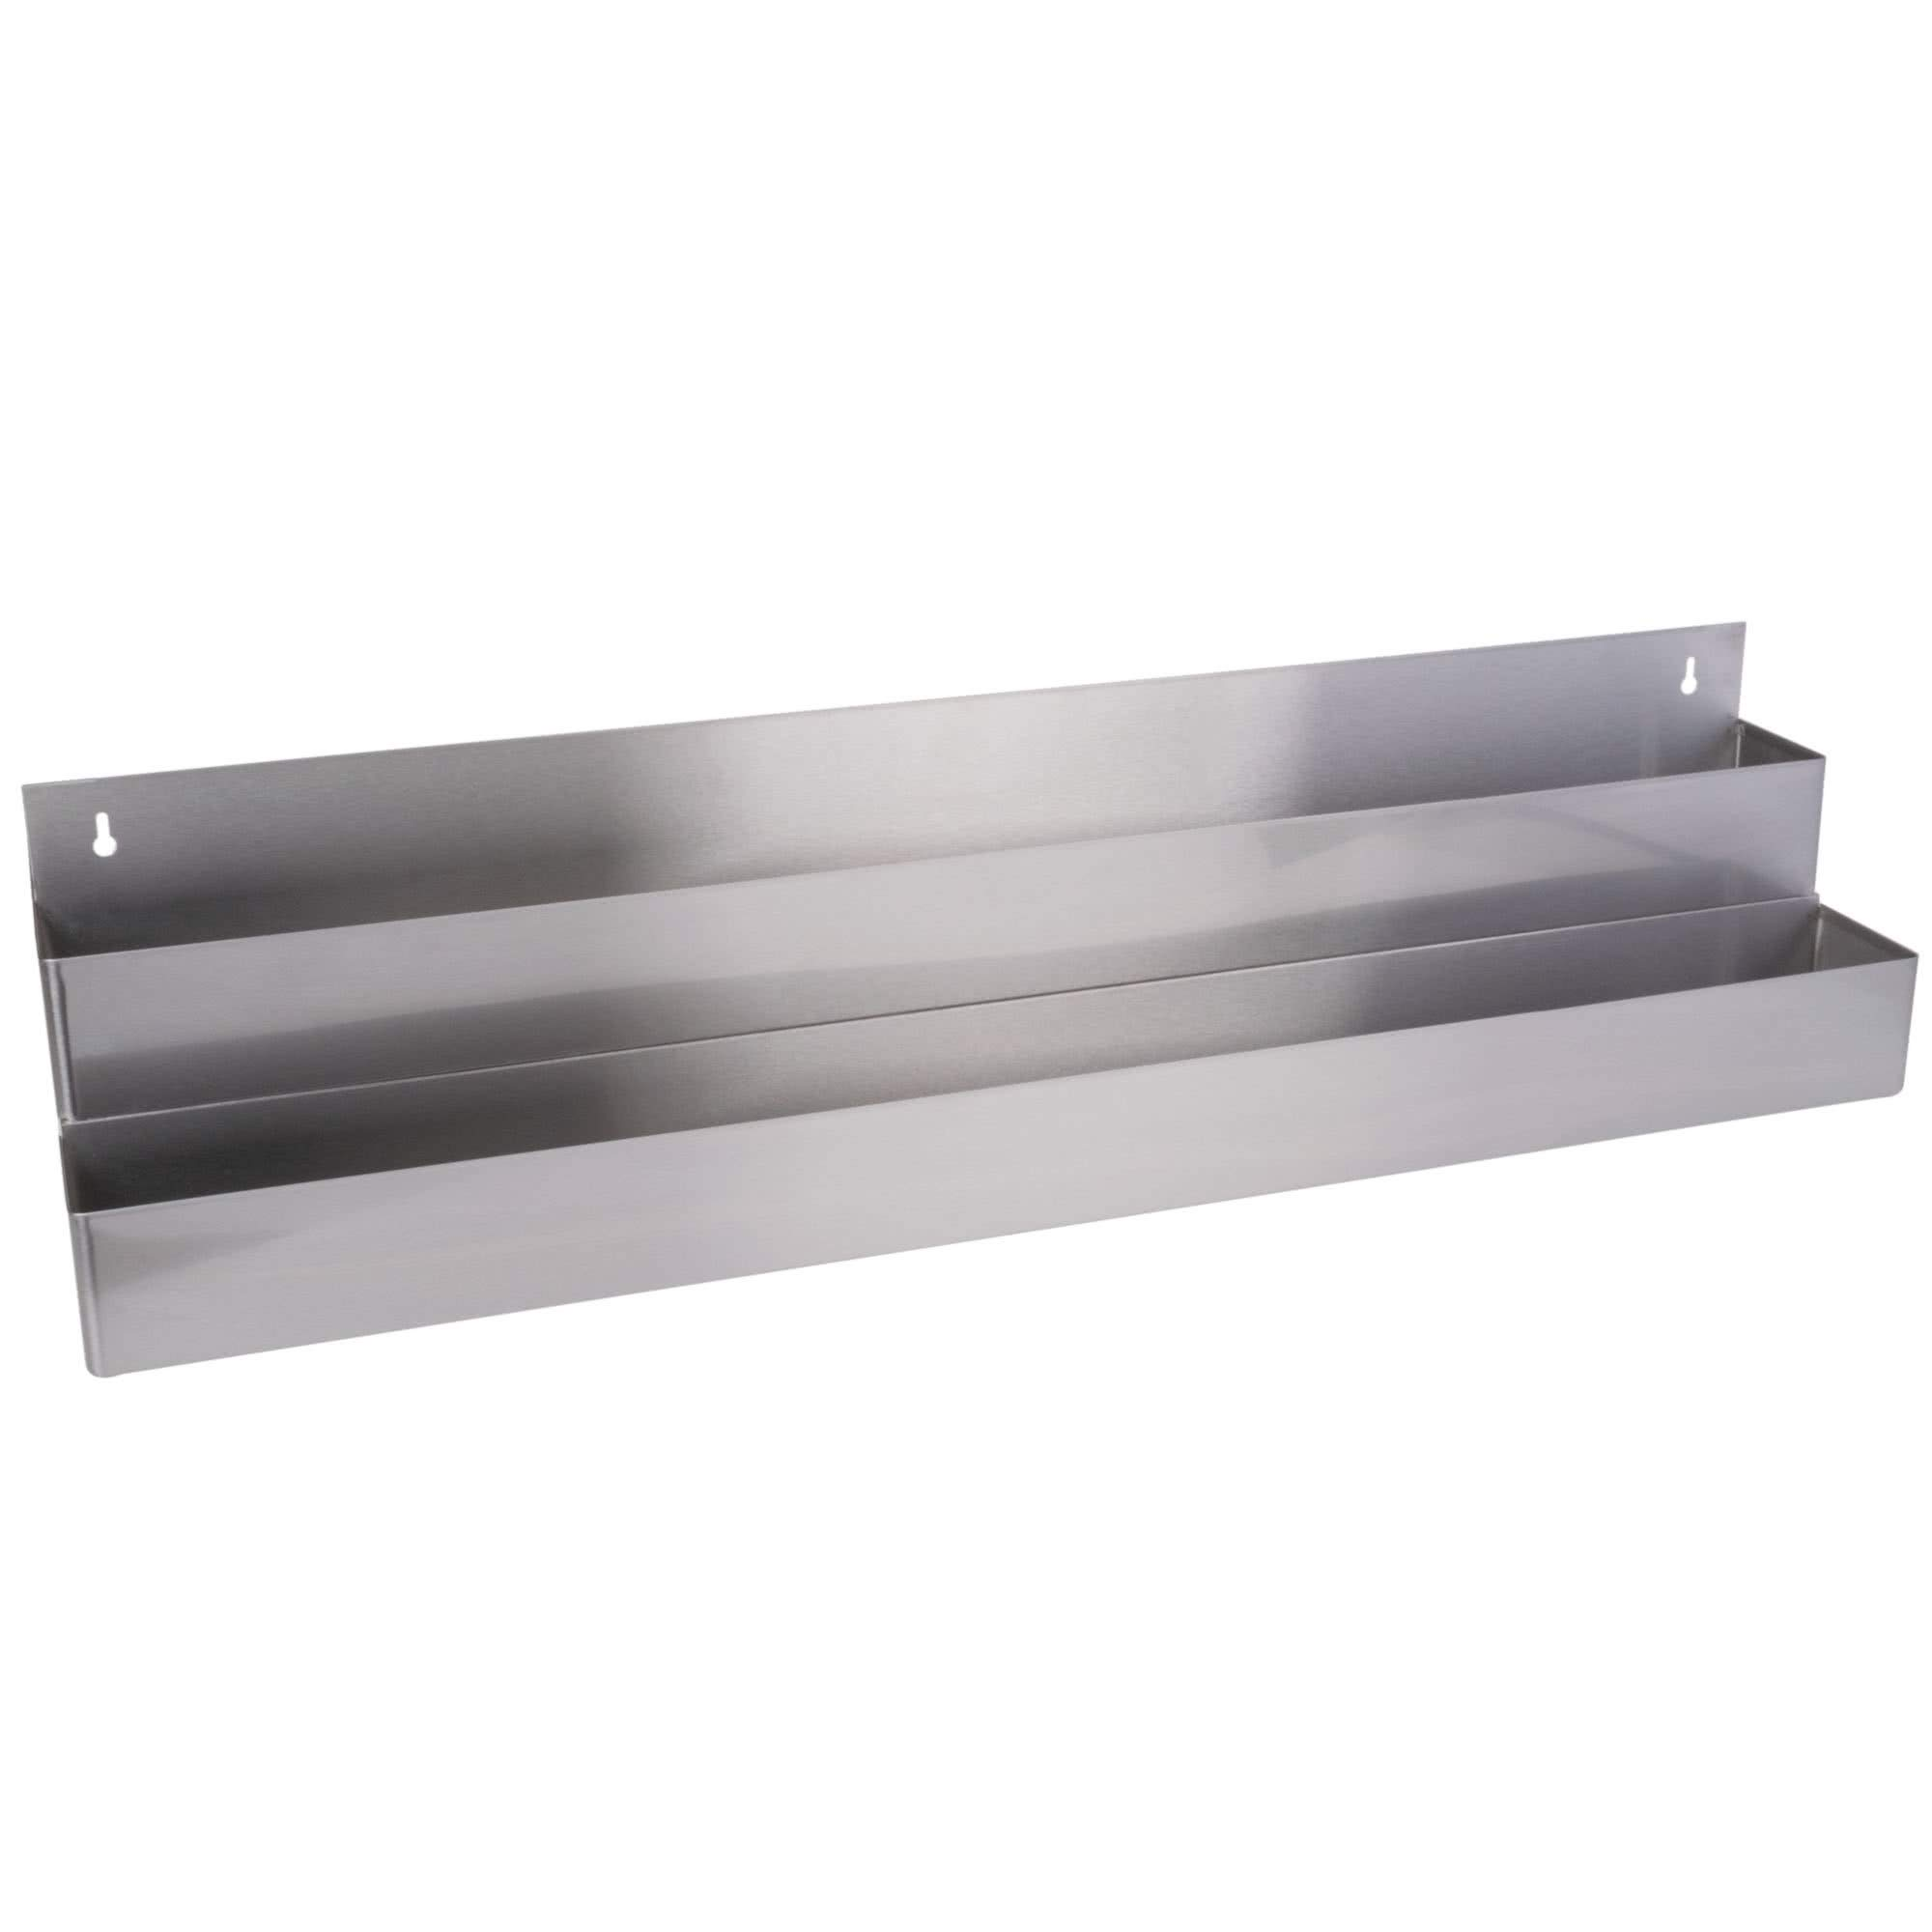 TableTop King Stainless Steel Double Tier Speed Rail - 42'' by TableTop King (Image #3)